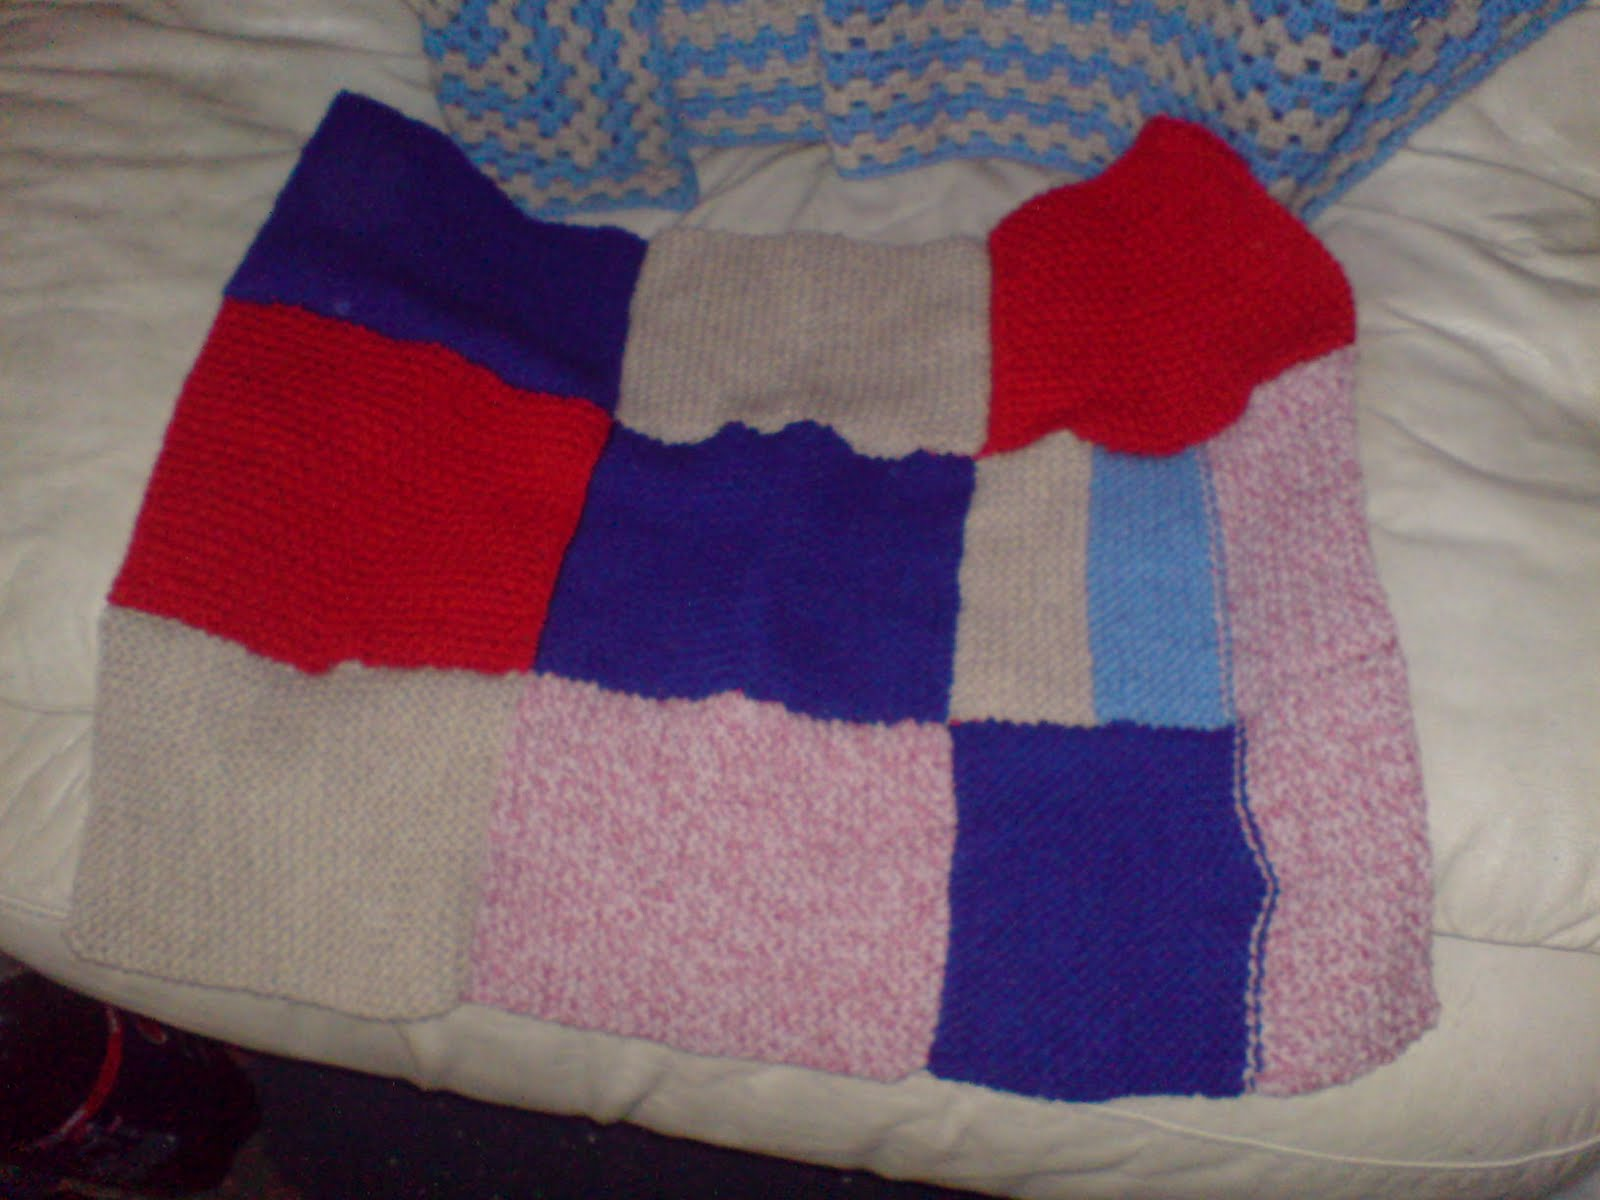 Rspca Knitting Patterns For Dogs : HANDMADE BY LILACANGLIA: A couple of blankets I have knitted for my local ani...